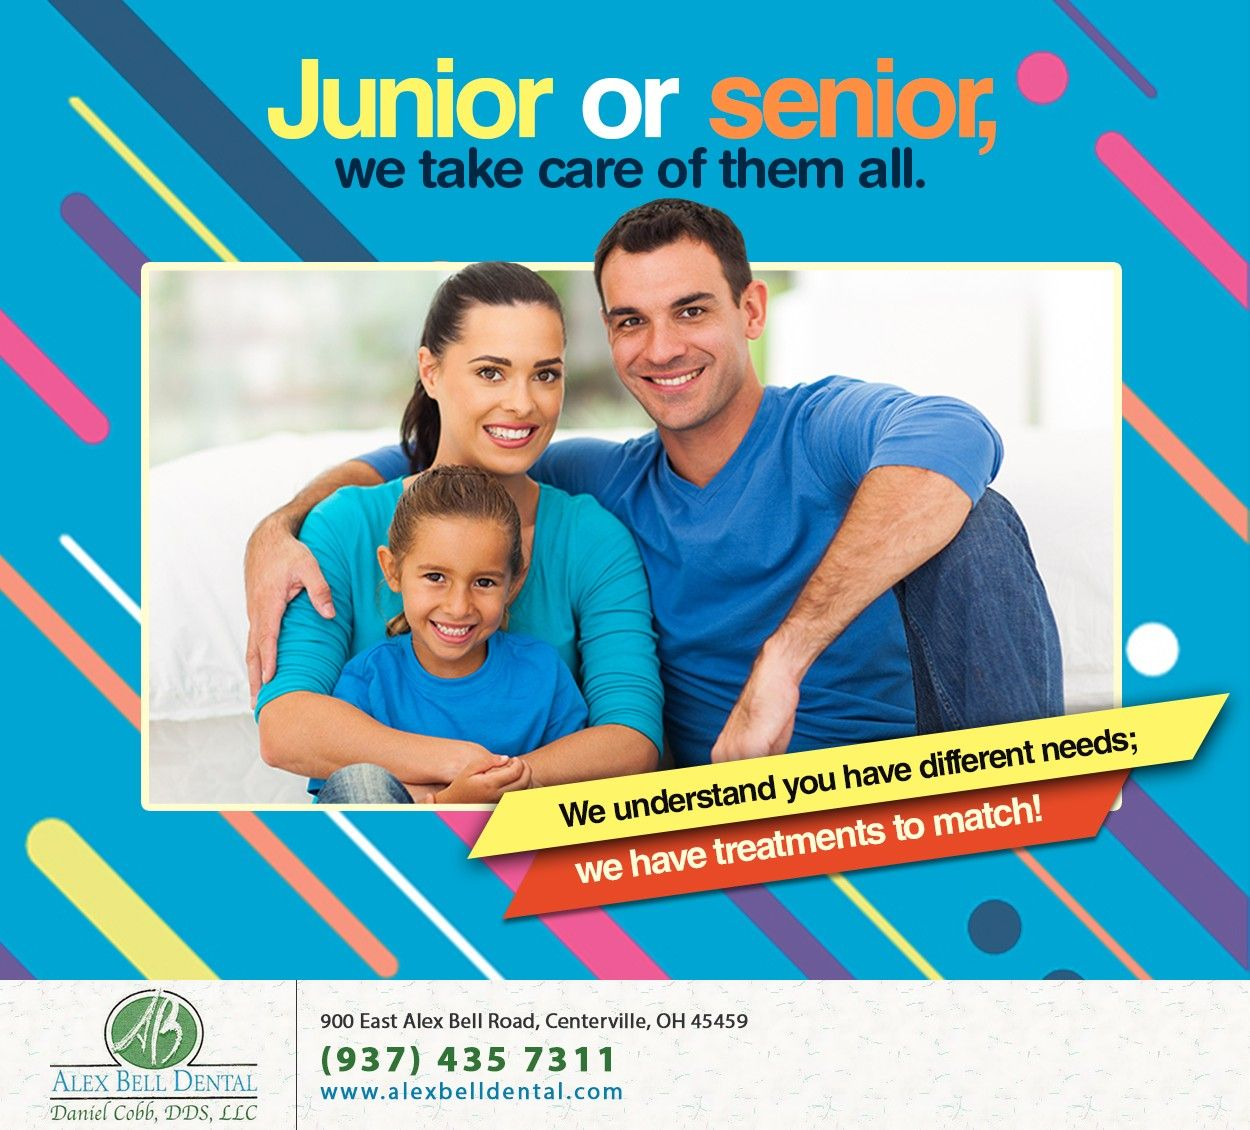 As a family dentist we care for the oral health of every